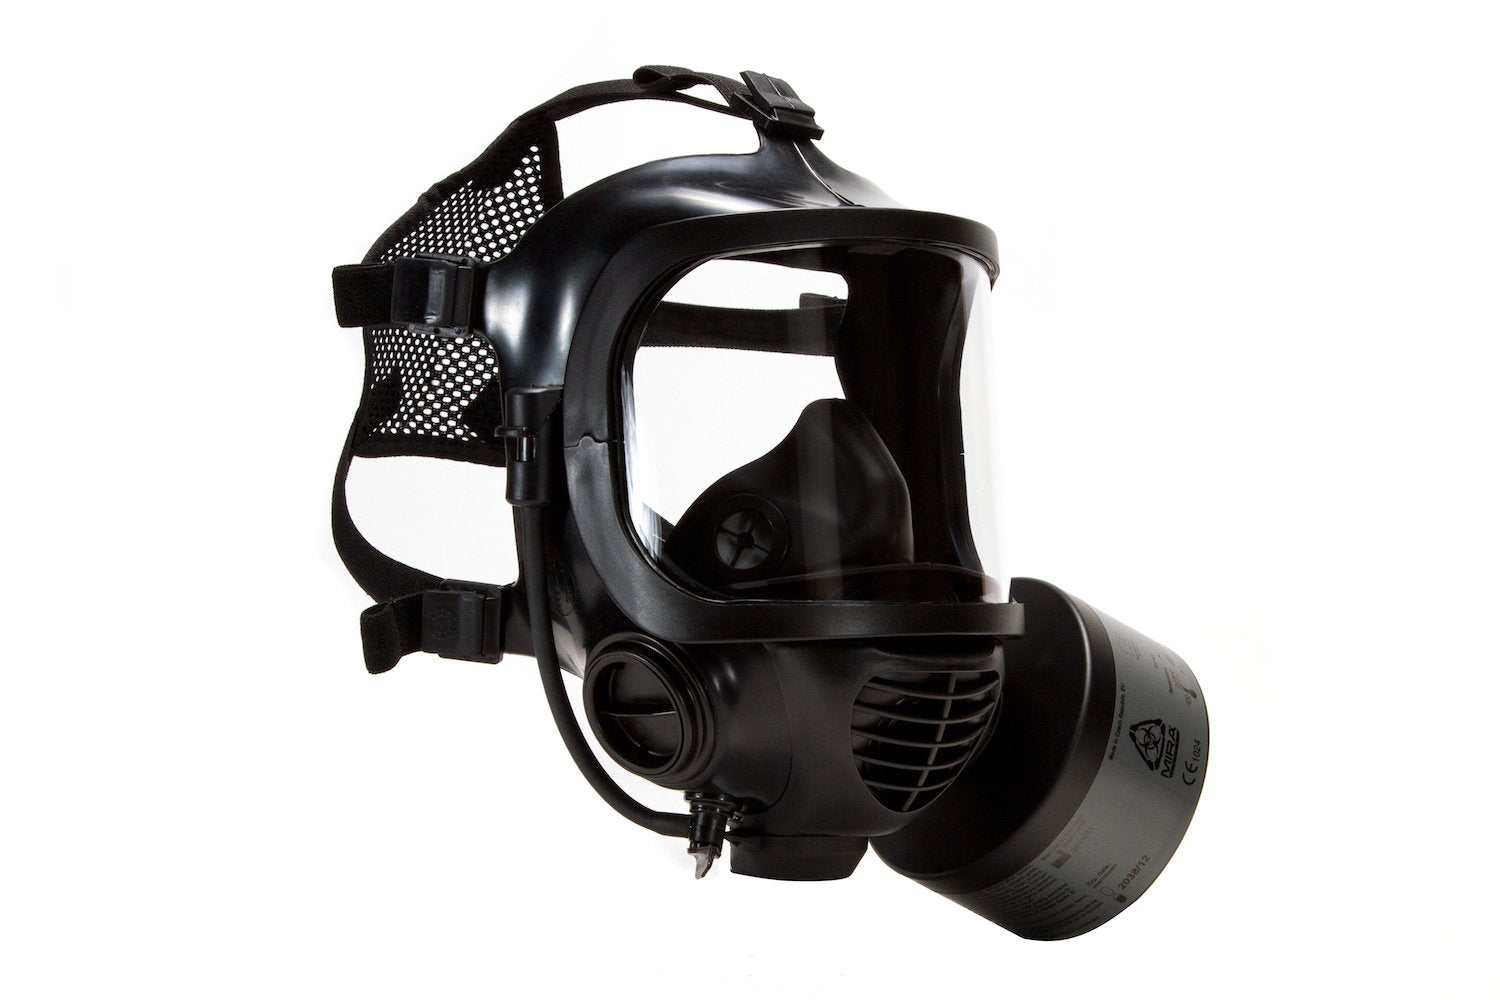 Side view of the CM-6M tactical gas mask as part of the MIRA Safety Nuclear Survival Kit